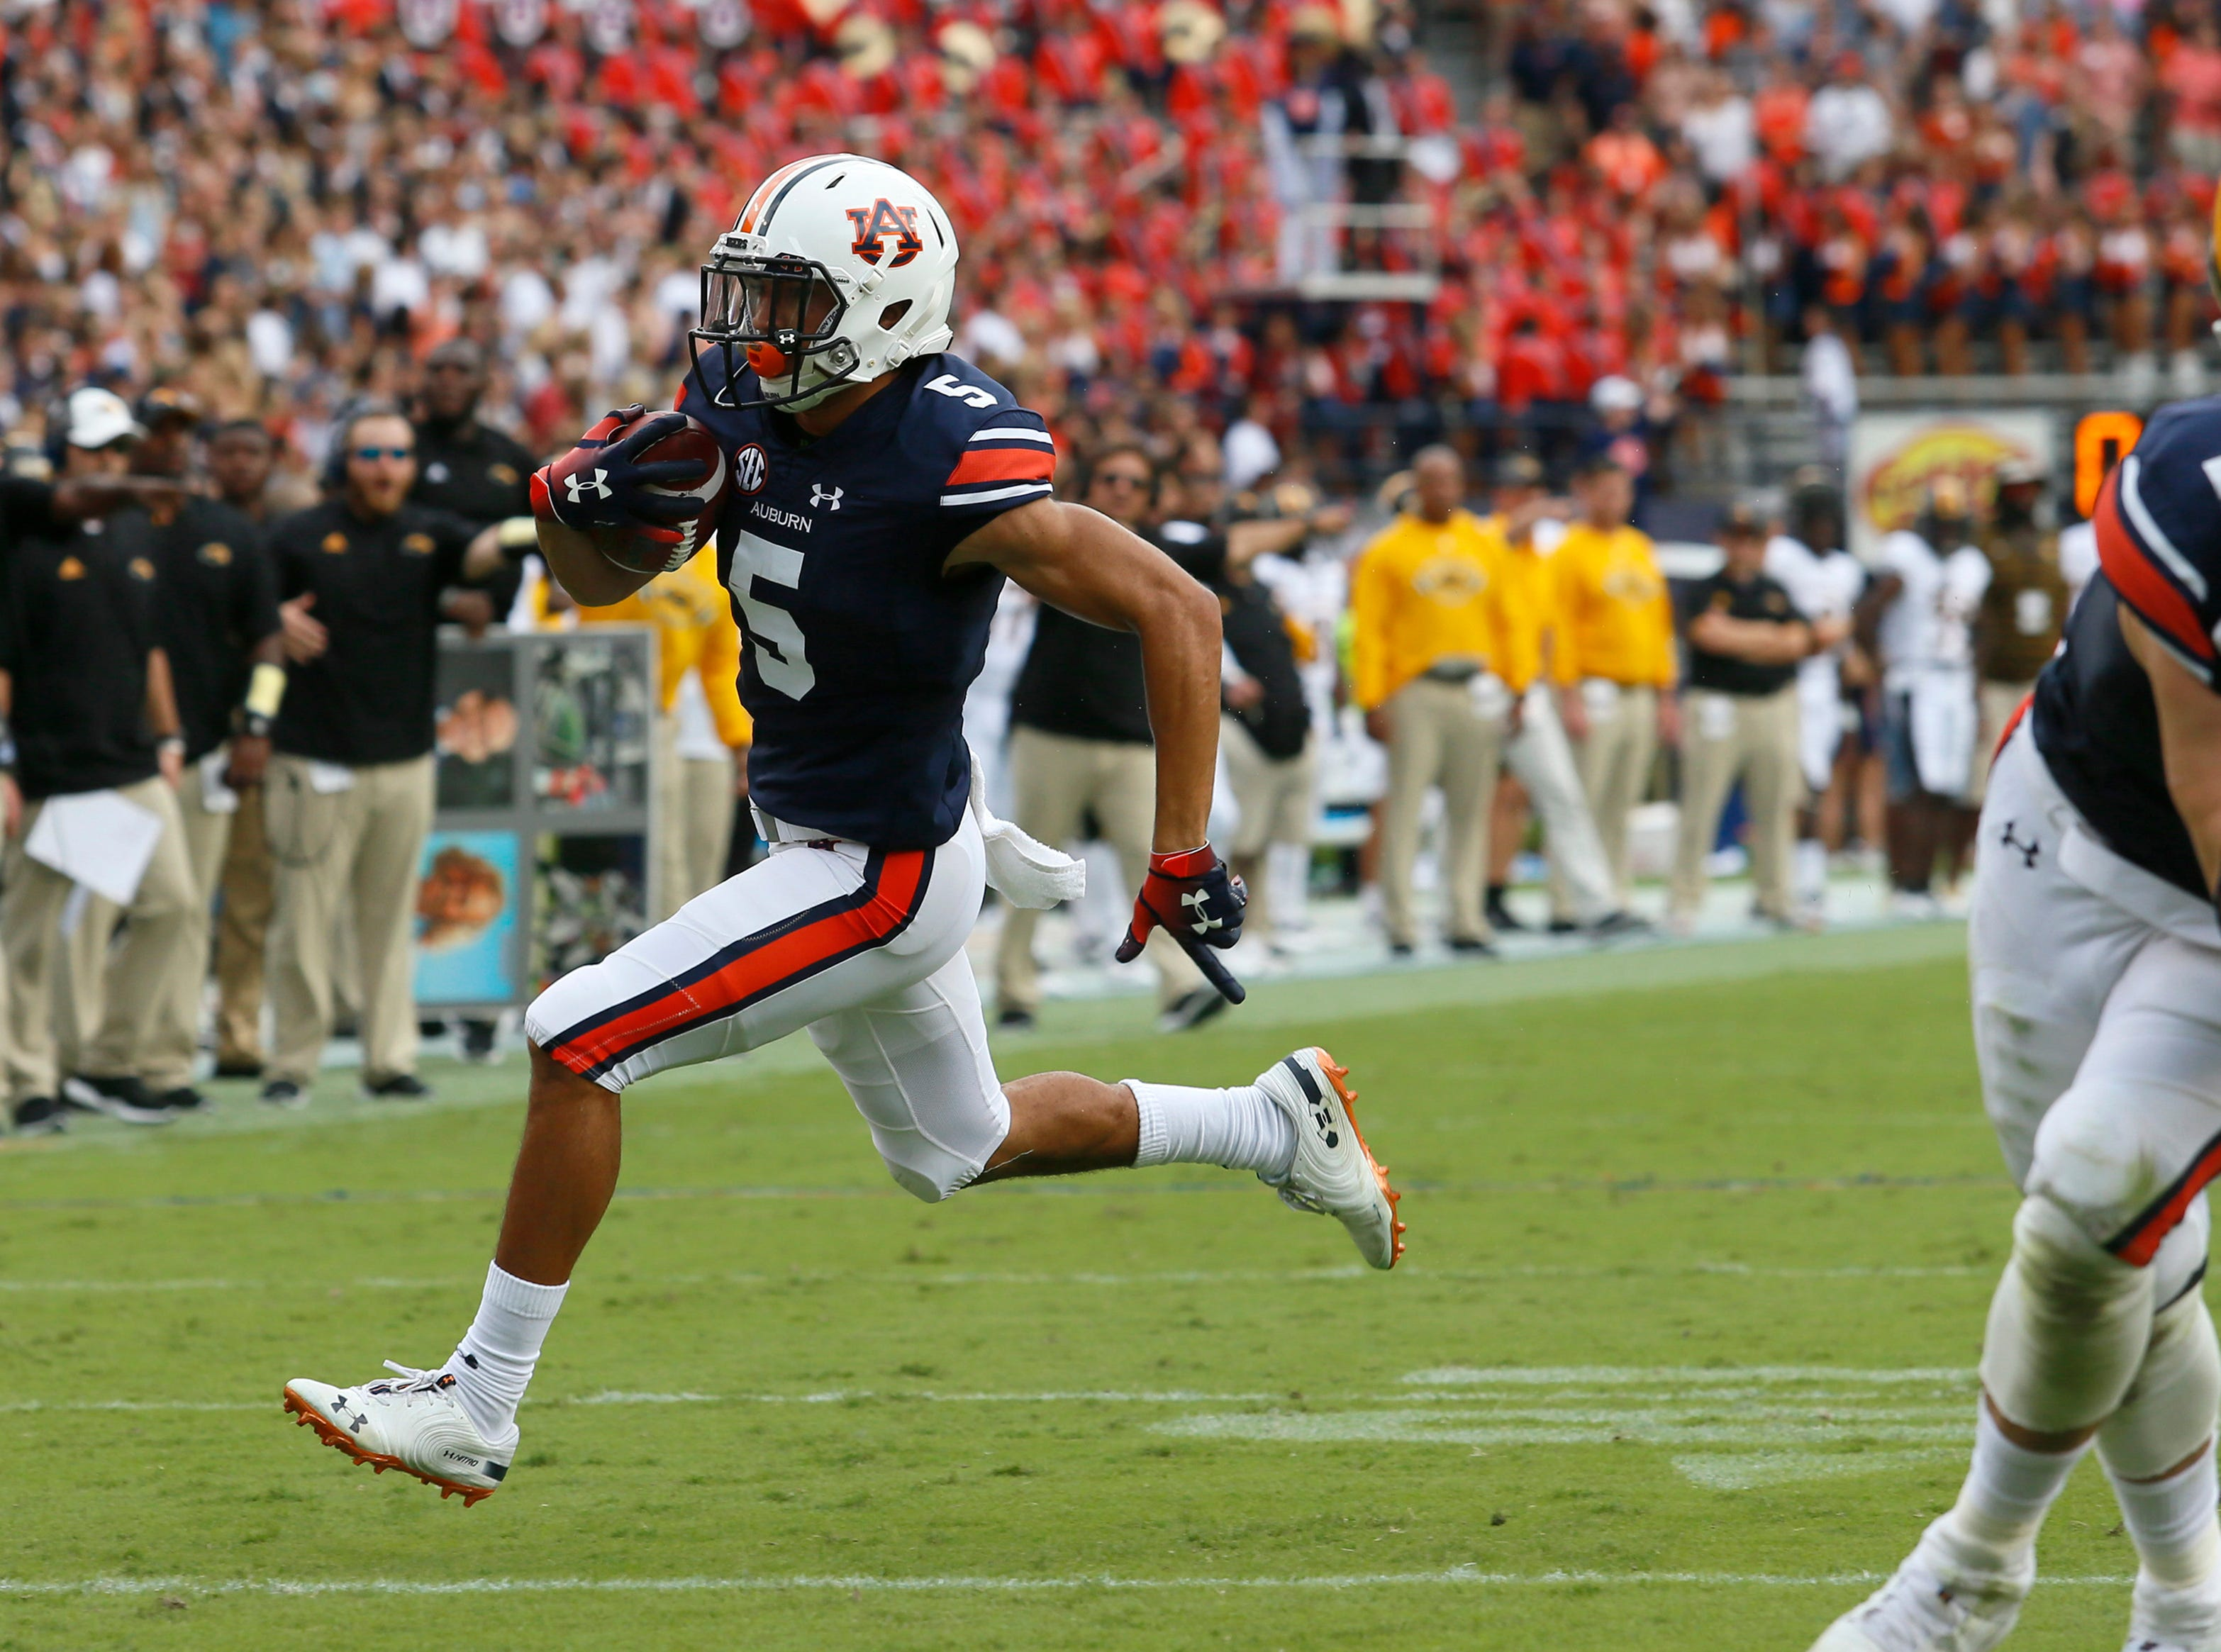 Sep 29, 2018; Auburn, AL, USA; Auburn Tigers receiver Anthony Schwartz (5) scores a touchdown against the Southern Miss Golden Eagles during the second quarter at Jordan-Hare Stadium. Mandatory Credit: John Reed-USA TODAY Sports